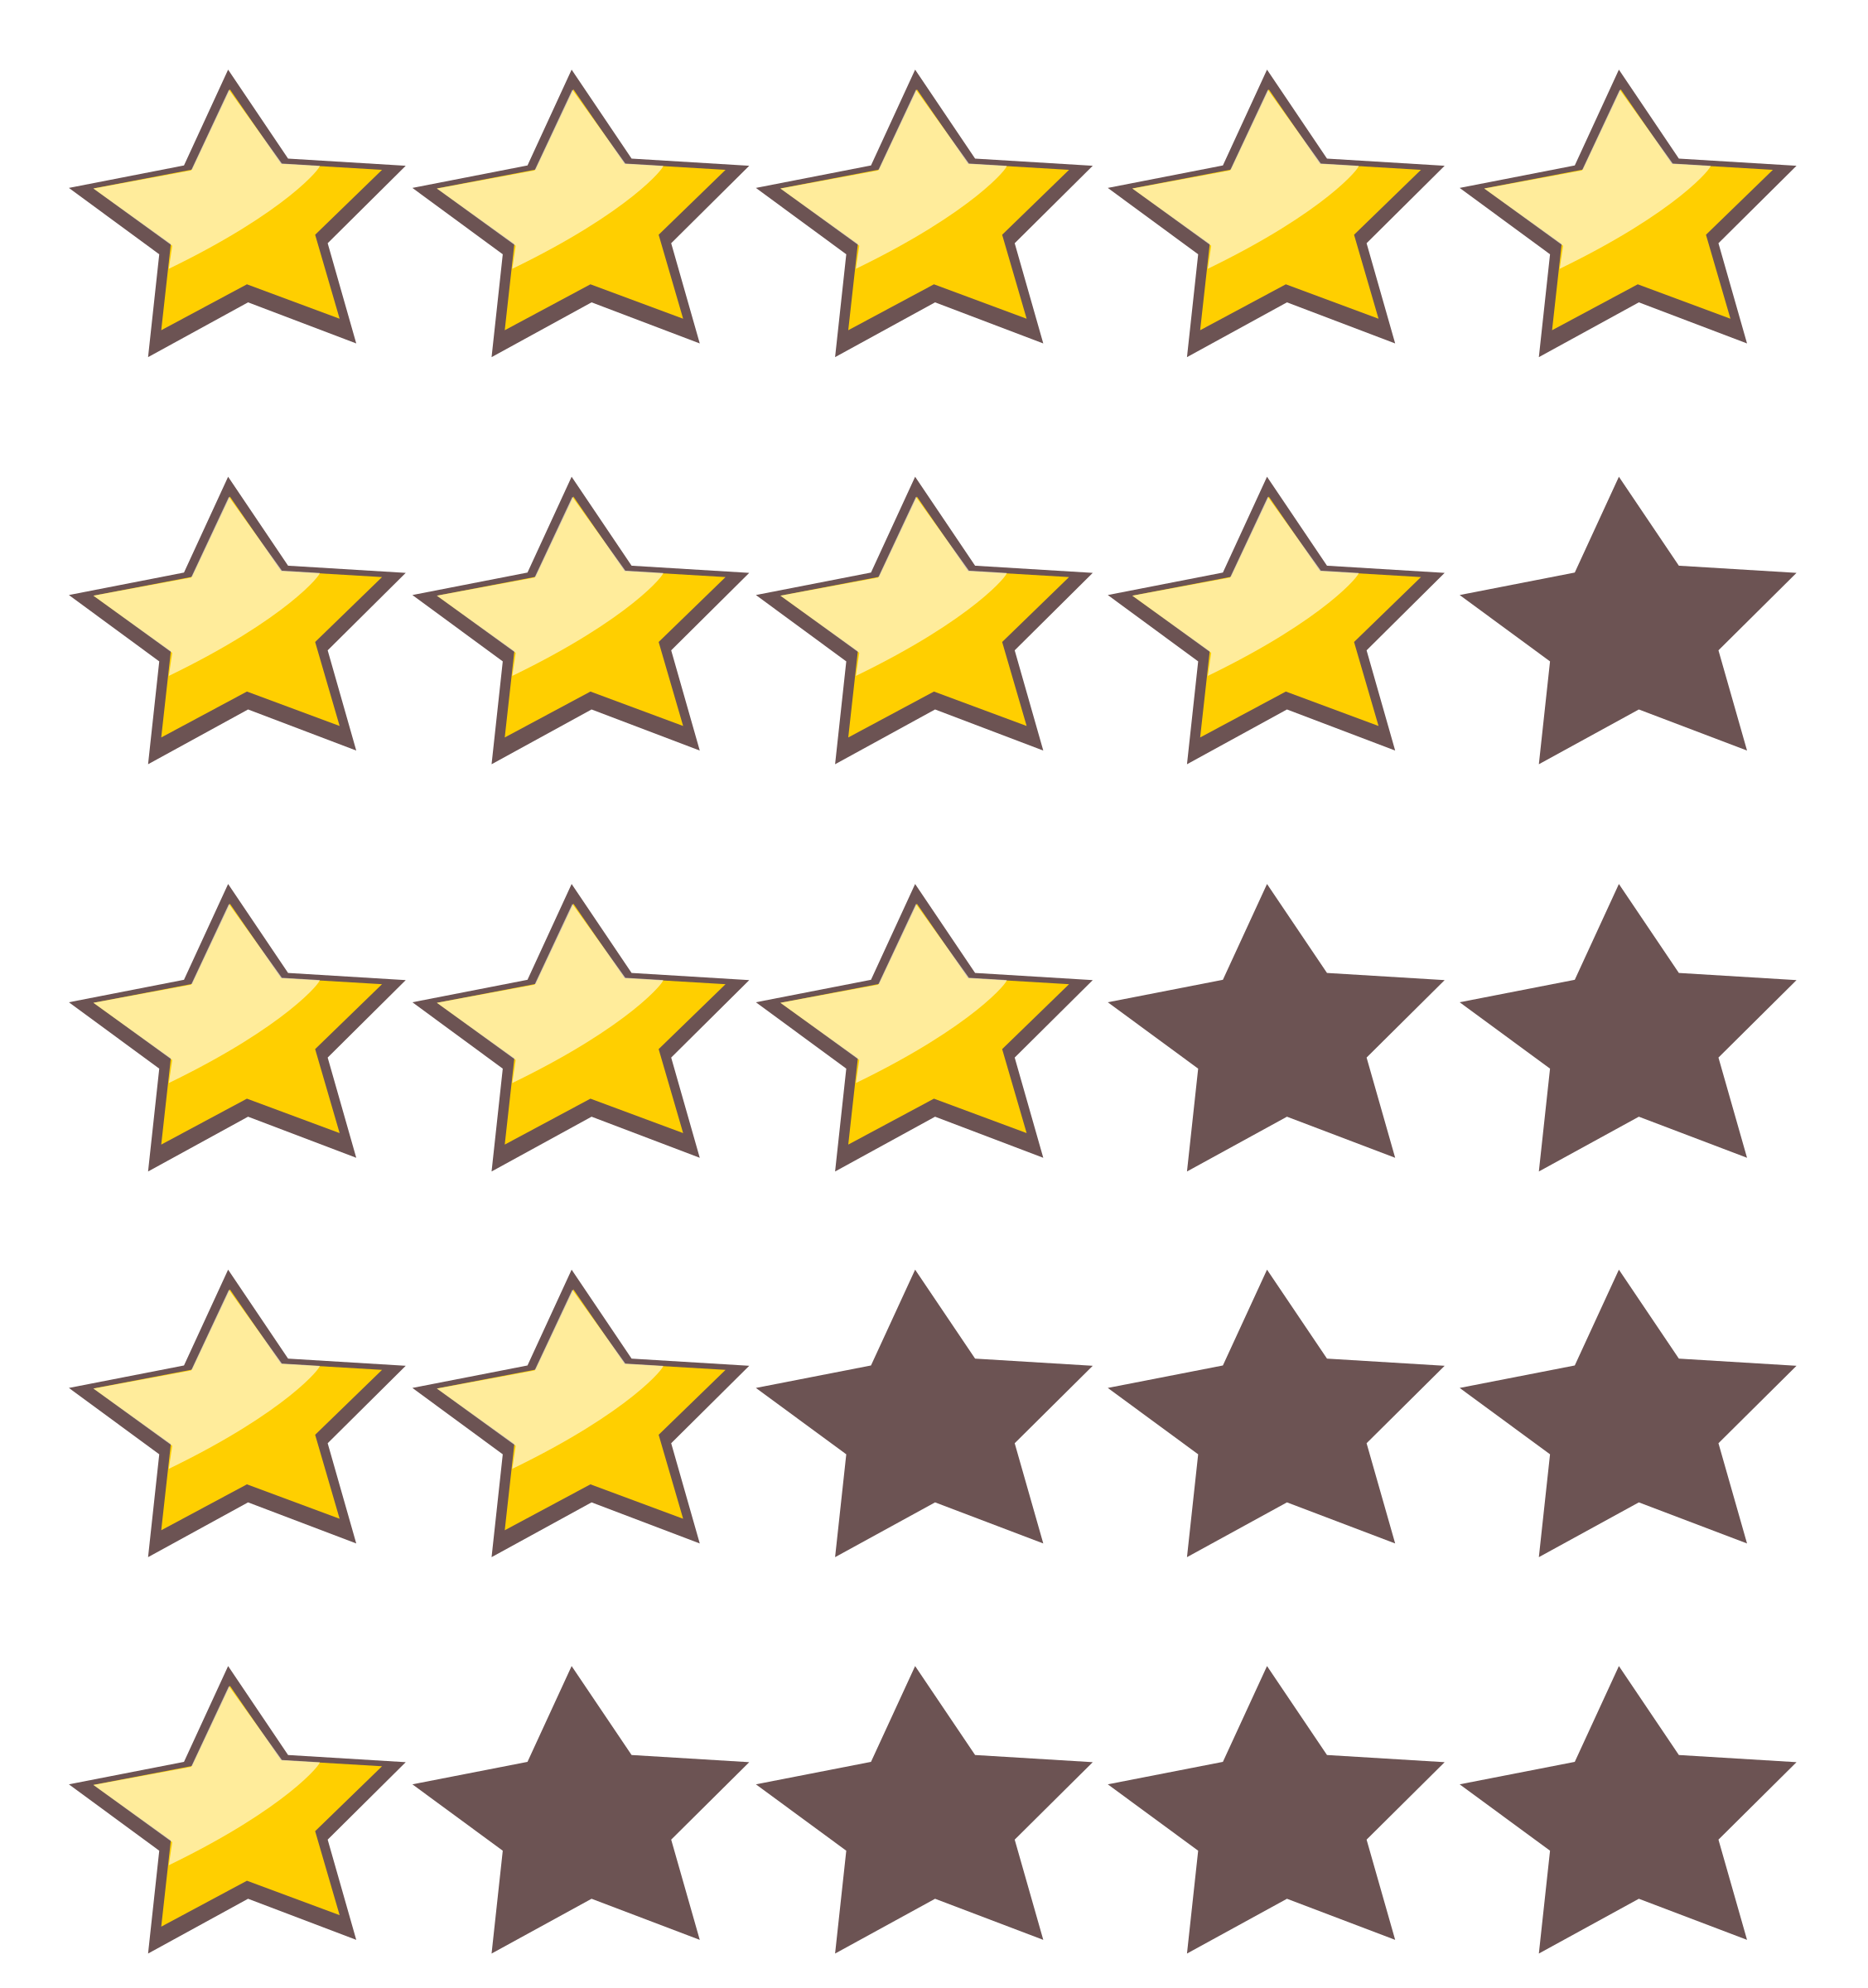 Future clipart occurrence. Star rating system big